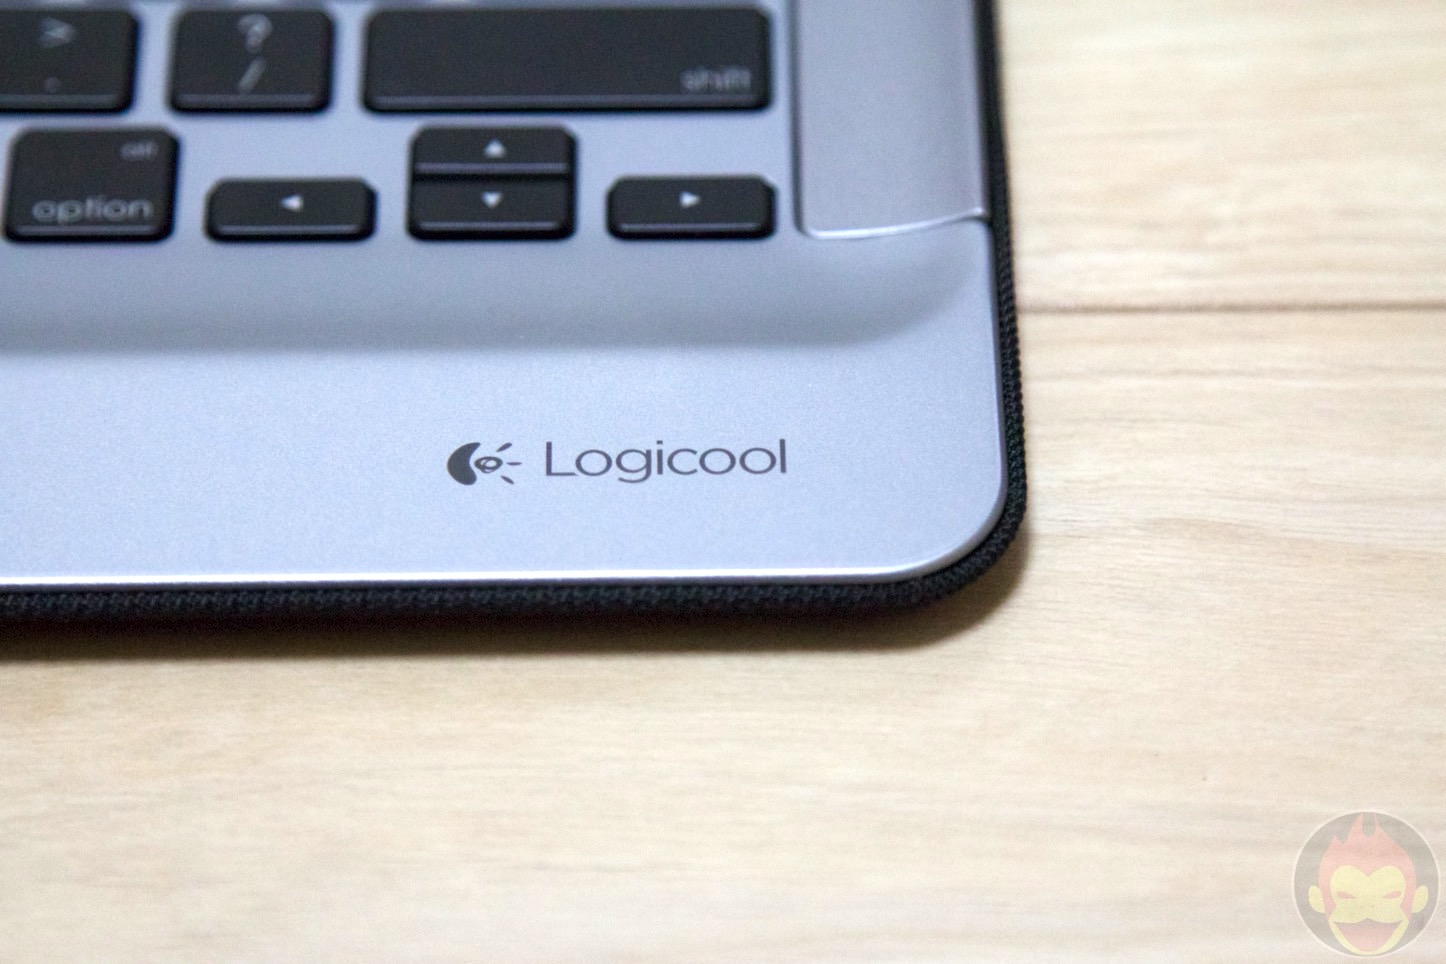 Logicool-CREATE-Keybaord-for-iPad-Pro-06.jpg